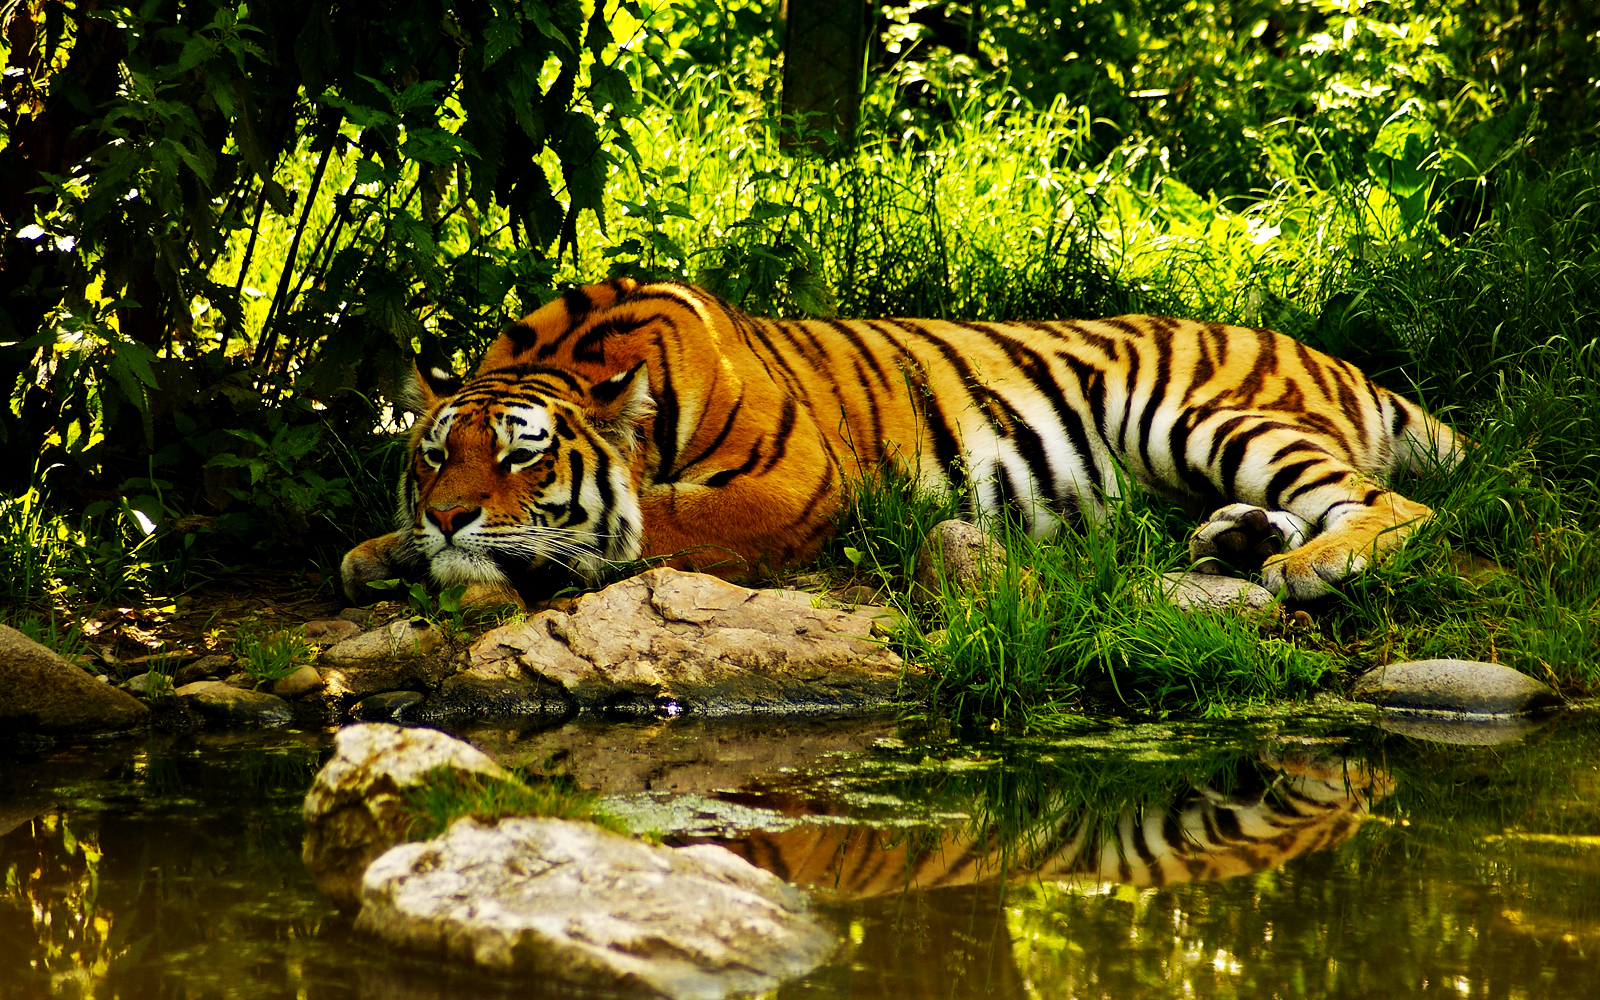 Tiger Resting near River Jungle Forest HD Wallpaper 1143